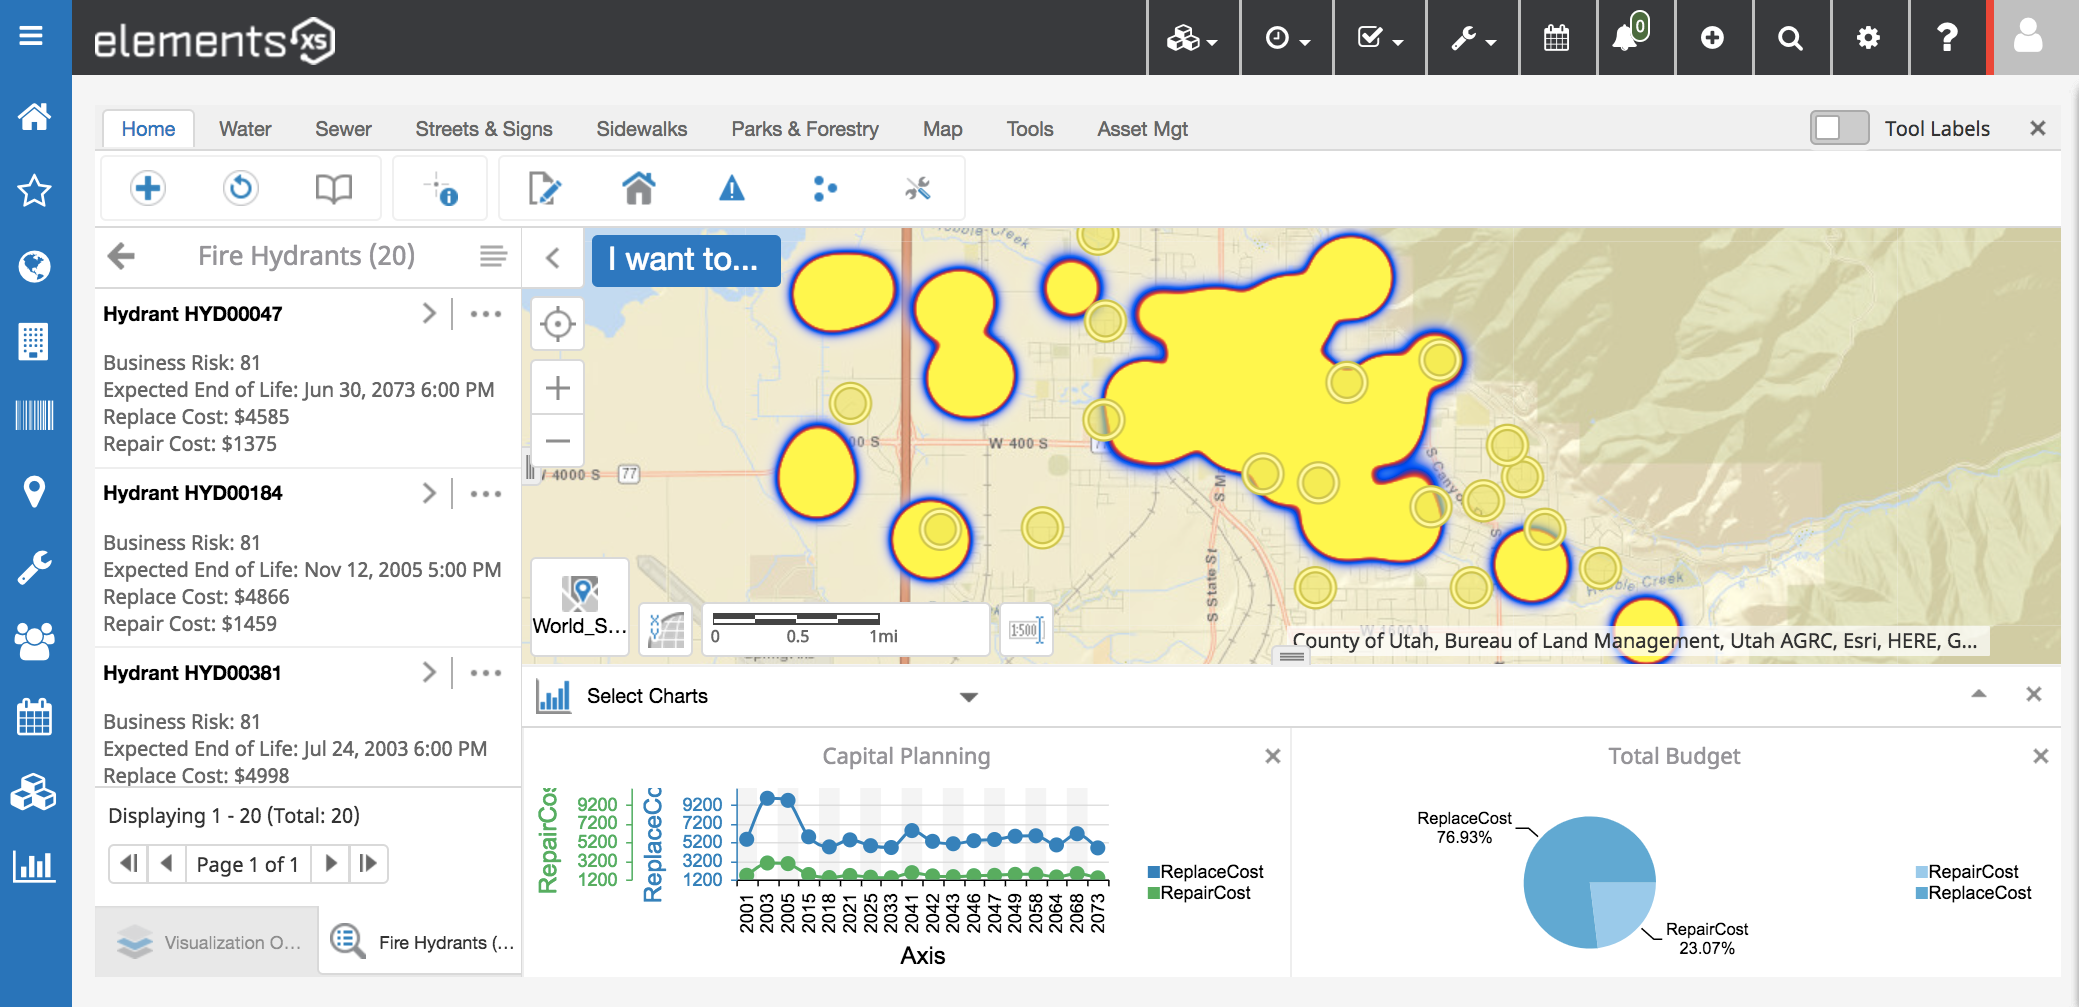 View work history locations, manage business risk, and track critical assets using your ArcGIS platform as the asset repository.